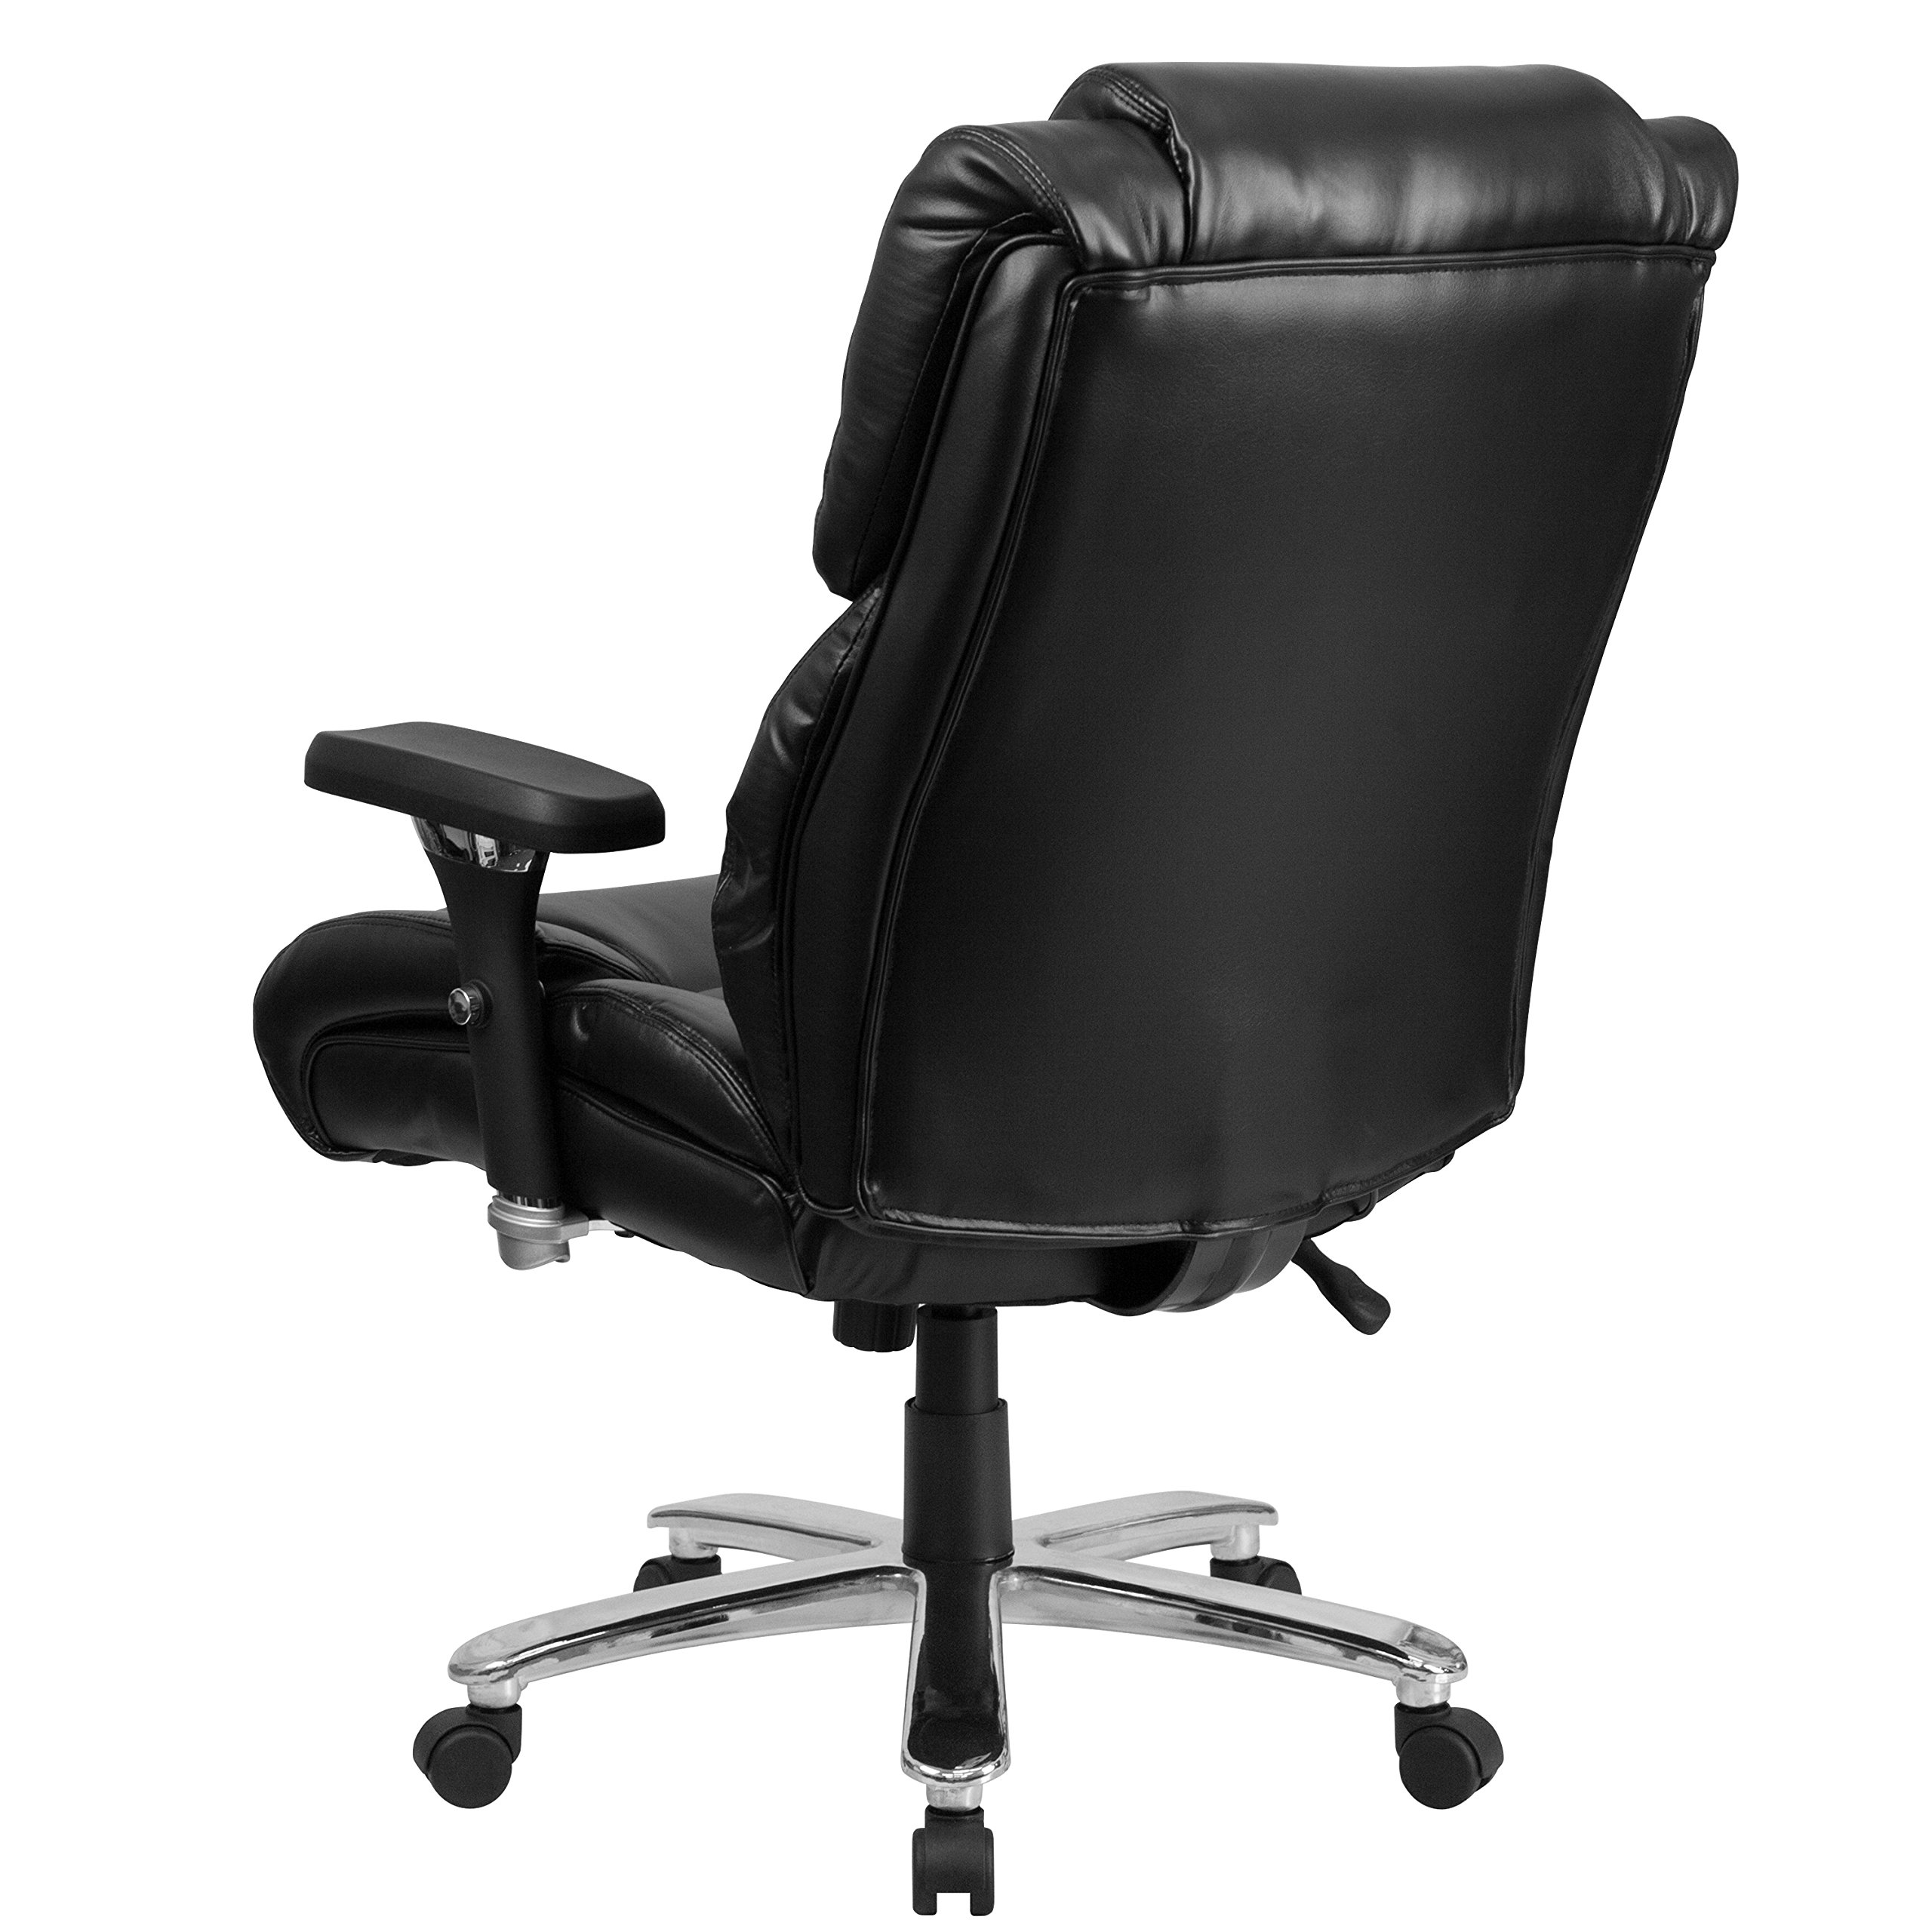 Flash Furniture HERCULES Series 24/7 Intensive Use Big & Tall 400 lb. Rated Black Leather Executive Swivel Chair with Lumbar Knob by Flash Furniture (Image #3)